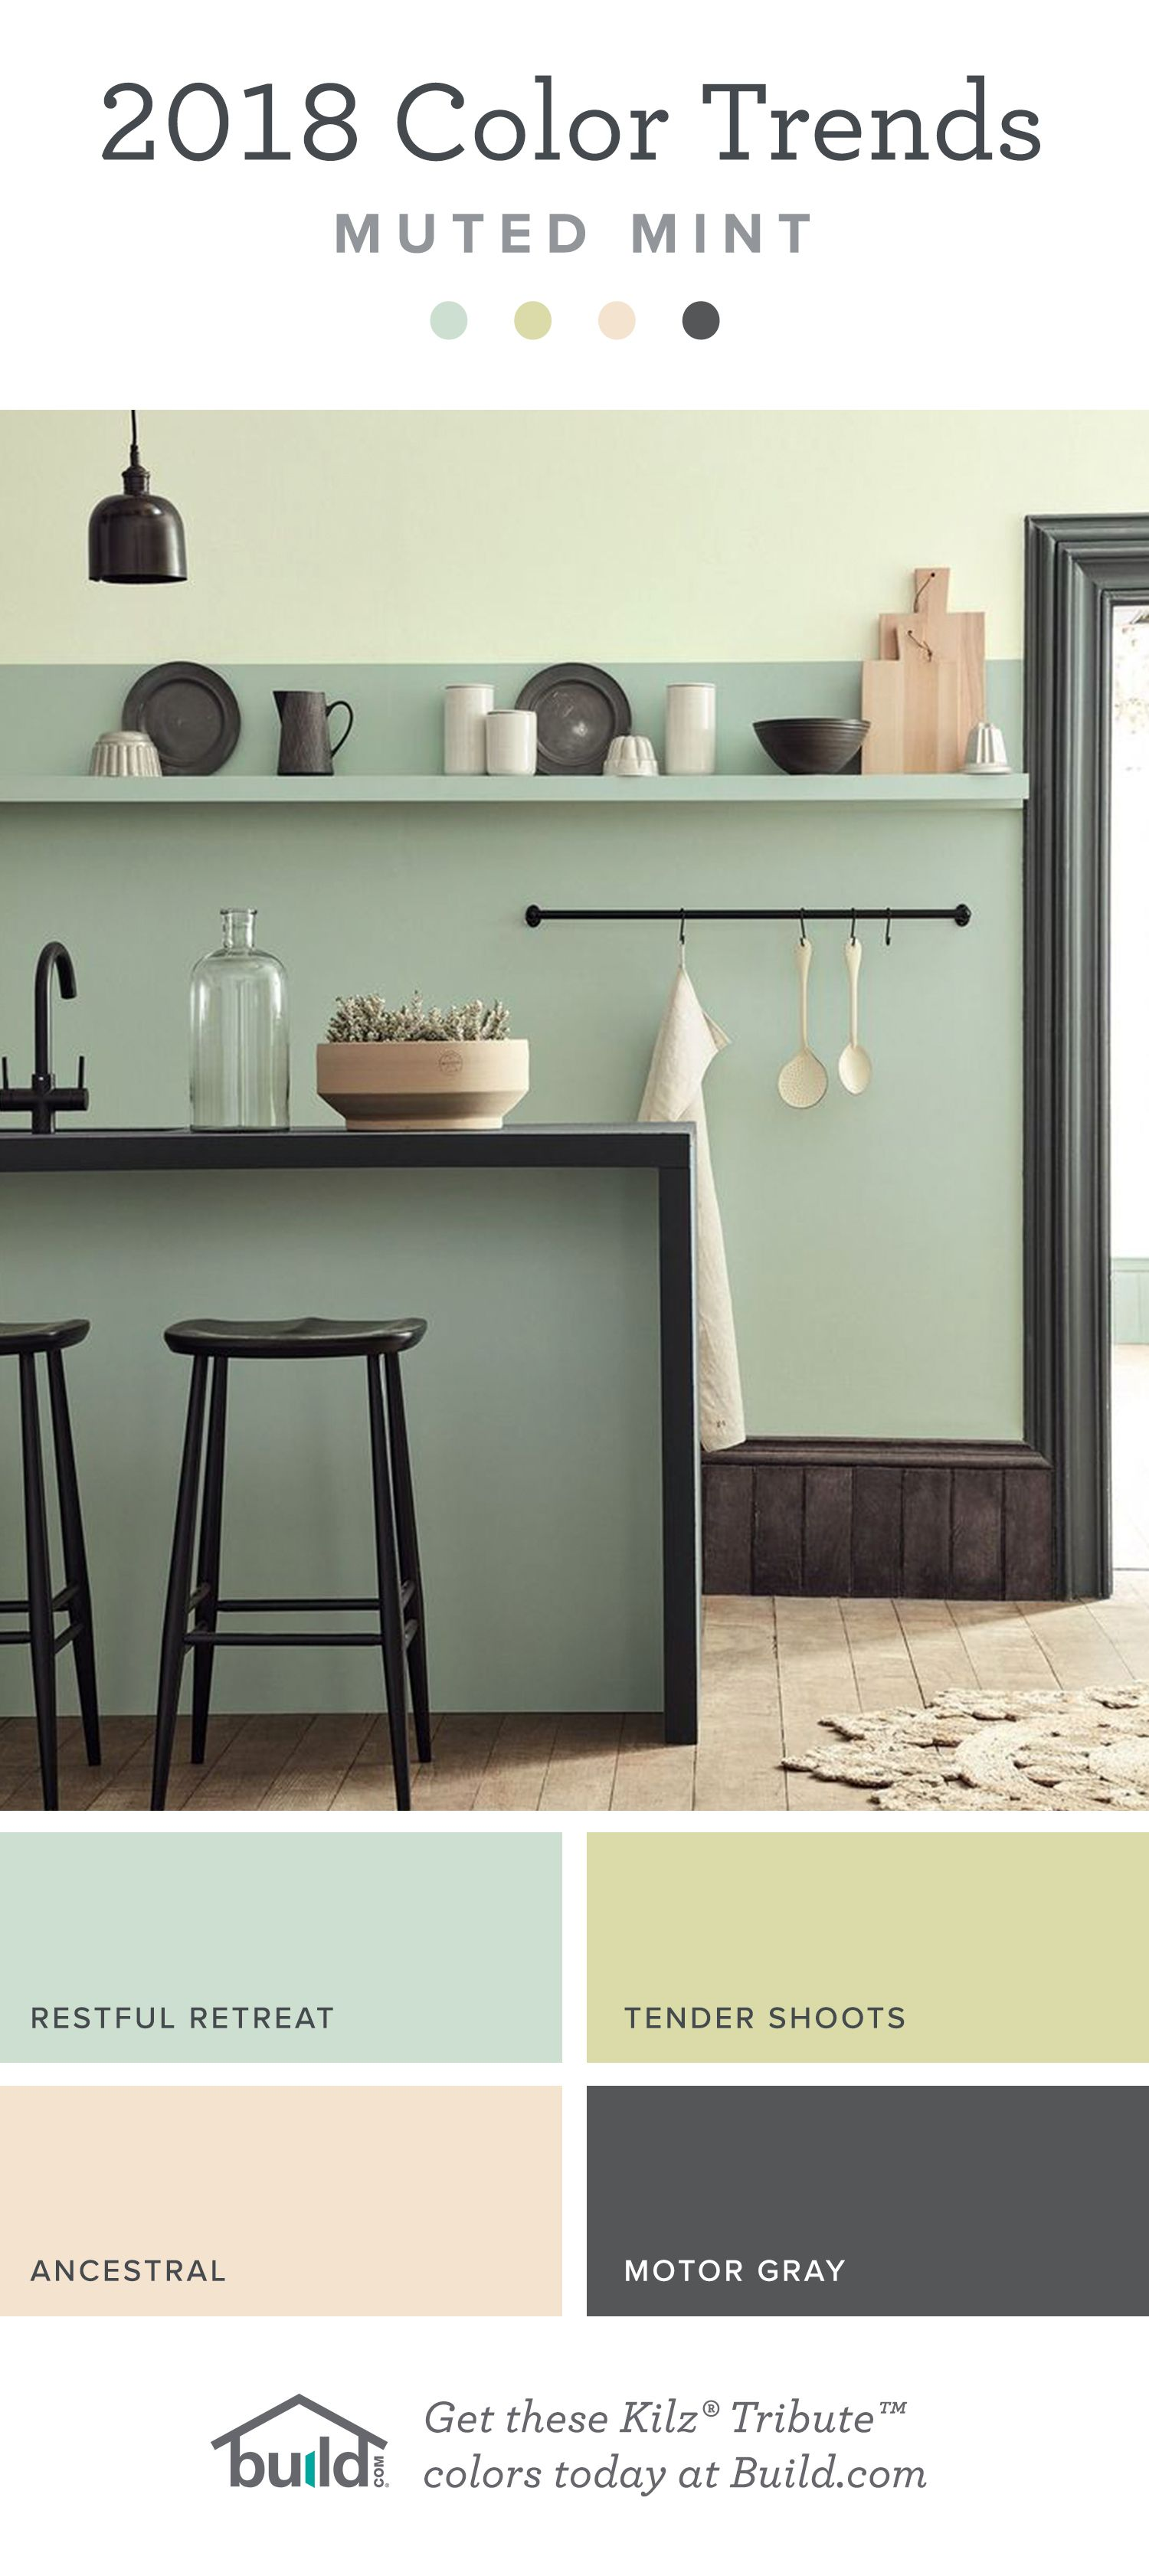 color trends muted mint home and garden kitchen